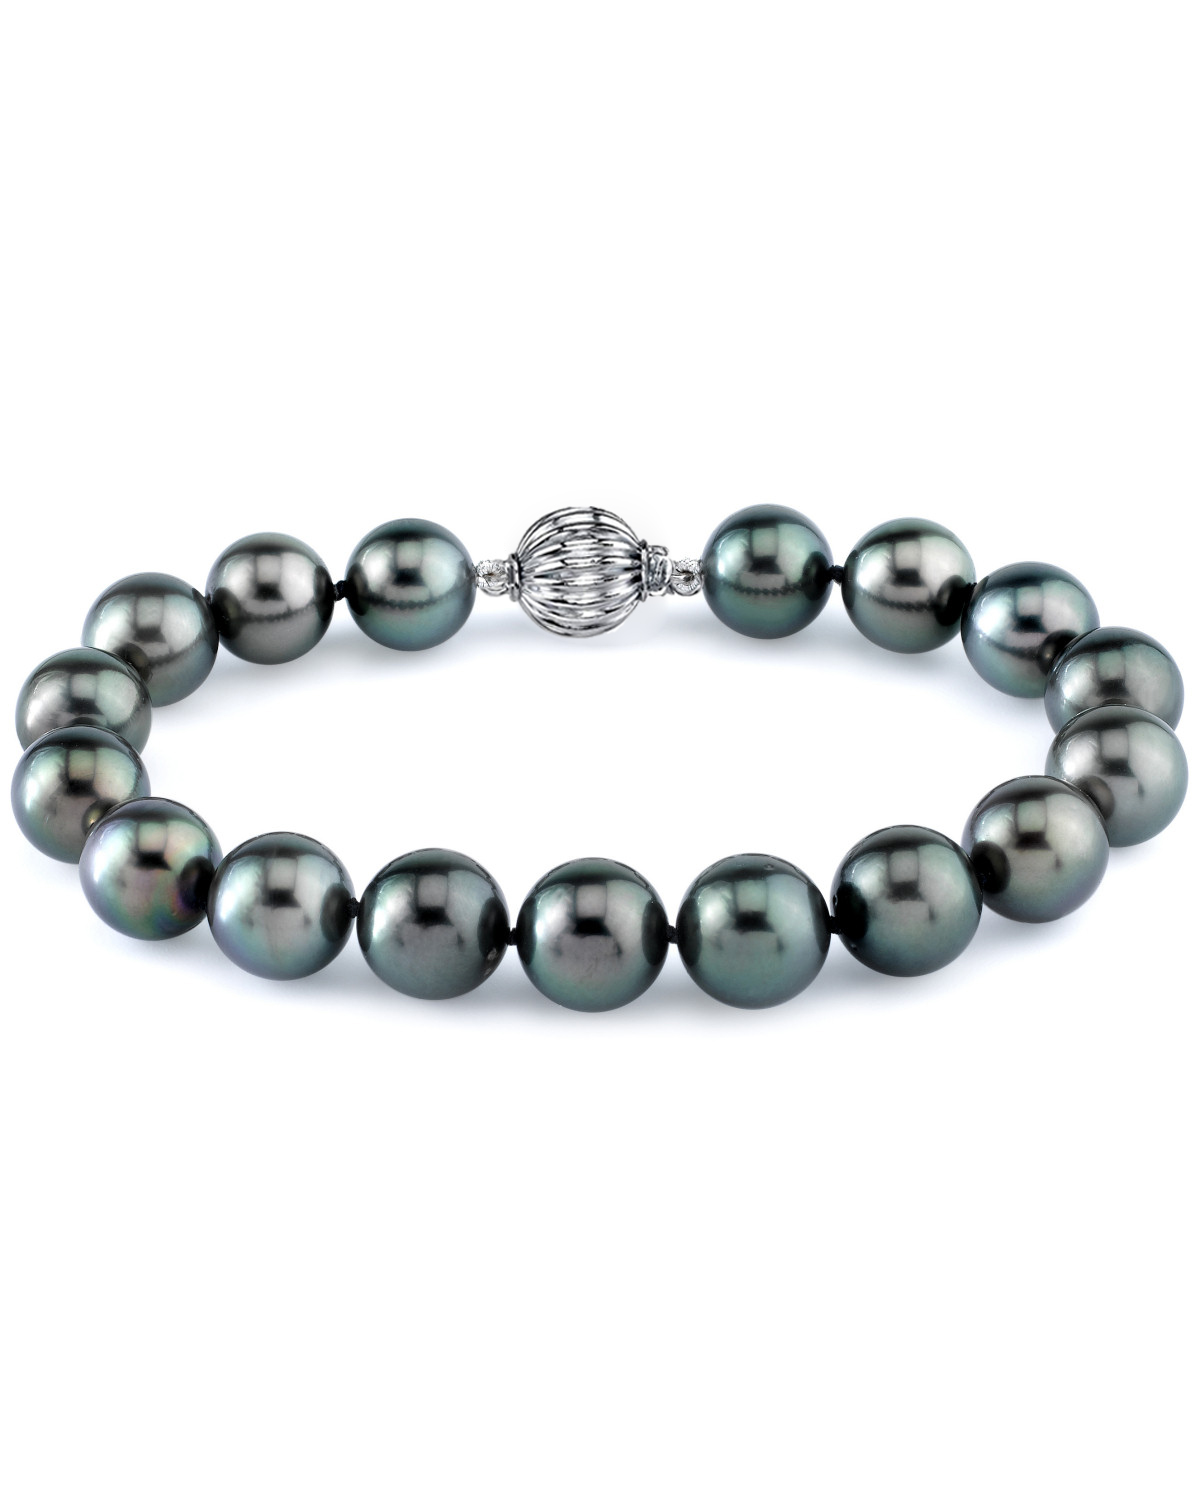 9-10mm Tahitian South Sea Pearl Bracelet - AAA Quality